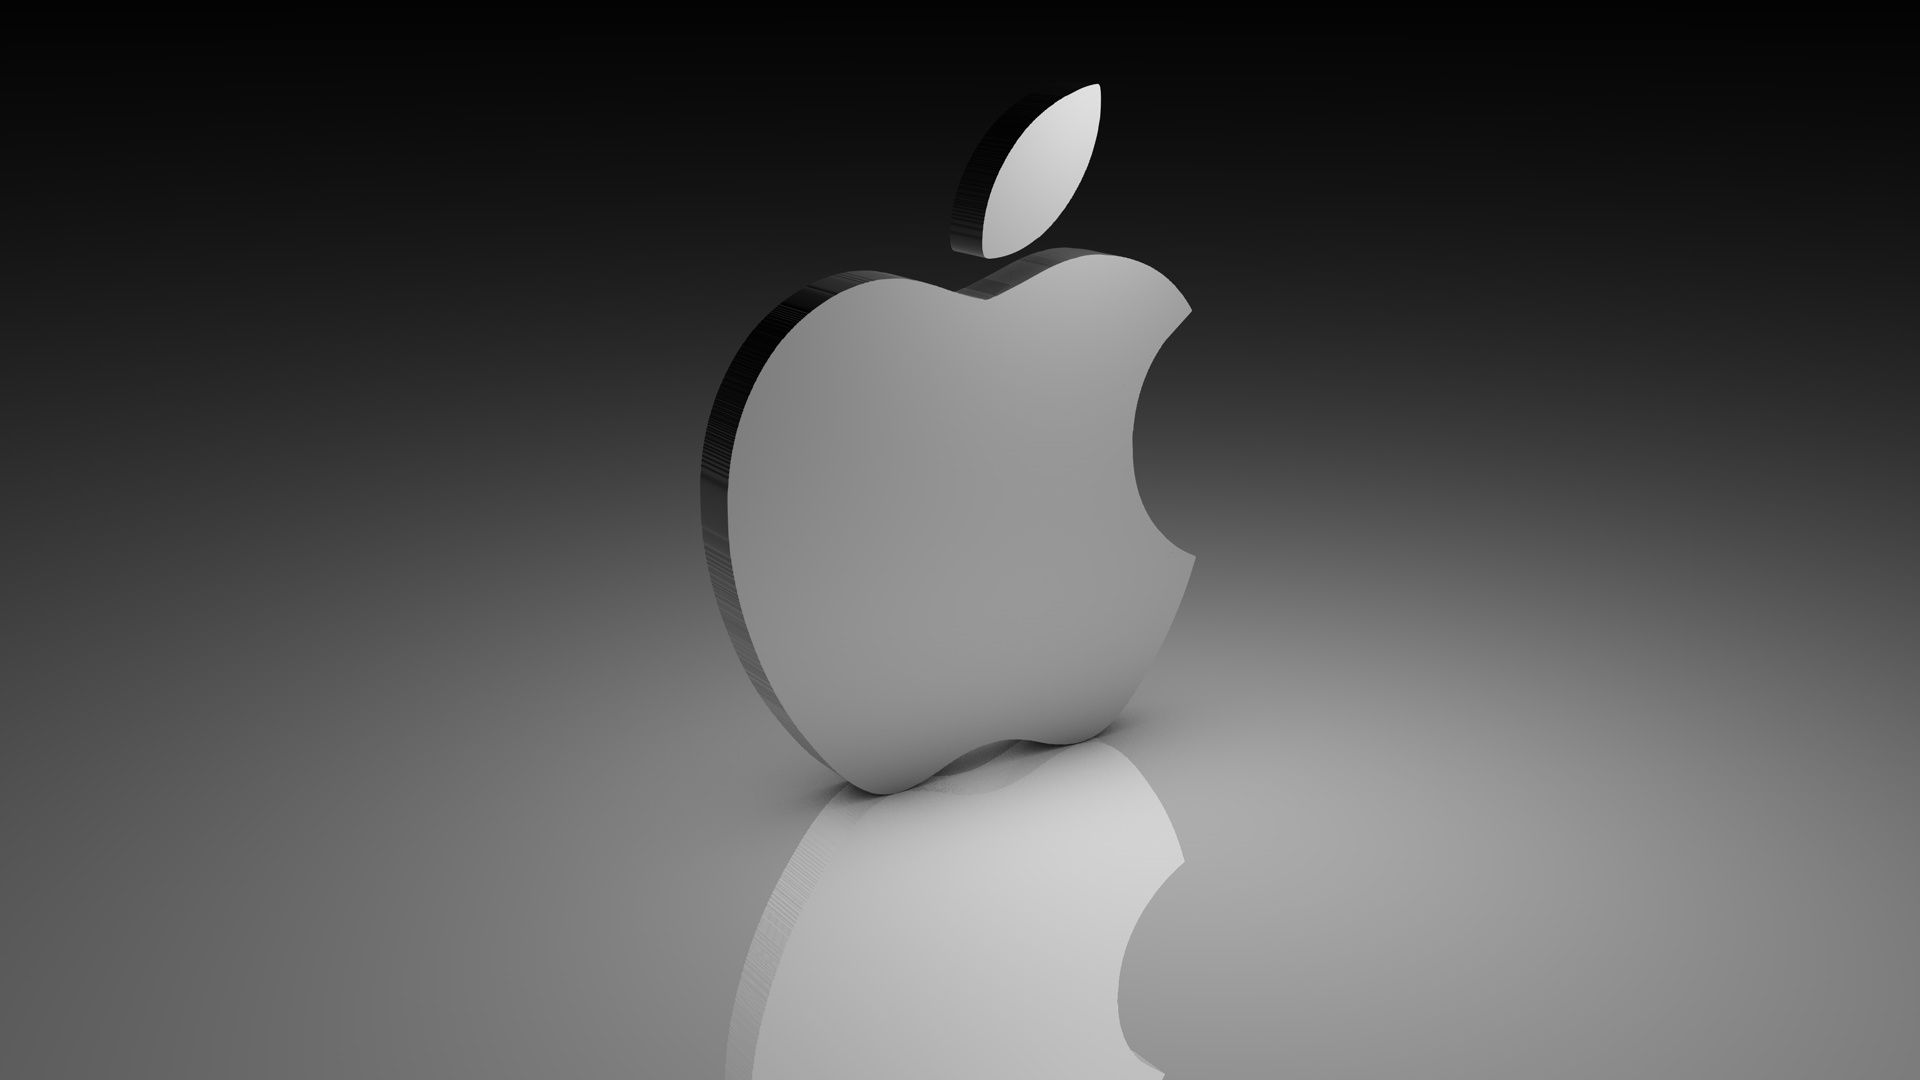 Apple Logo Hd Wallpaper Dazzling Wallpaper Apple Logo Wallpaper Hd Apple Wallpapers Apple Wallpaper